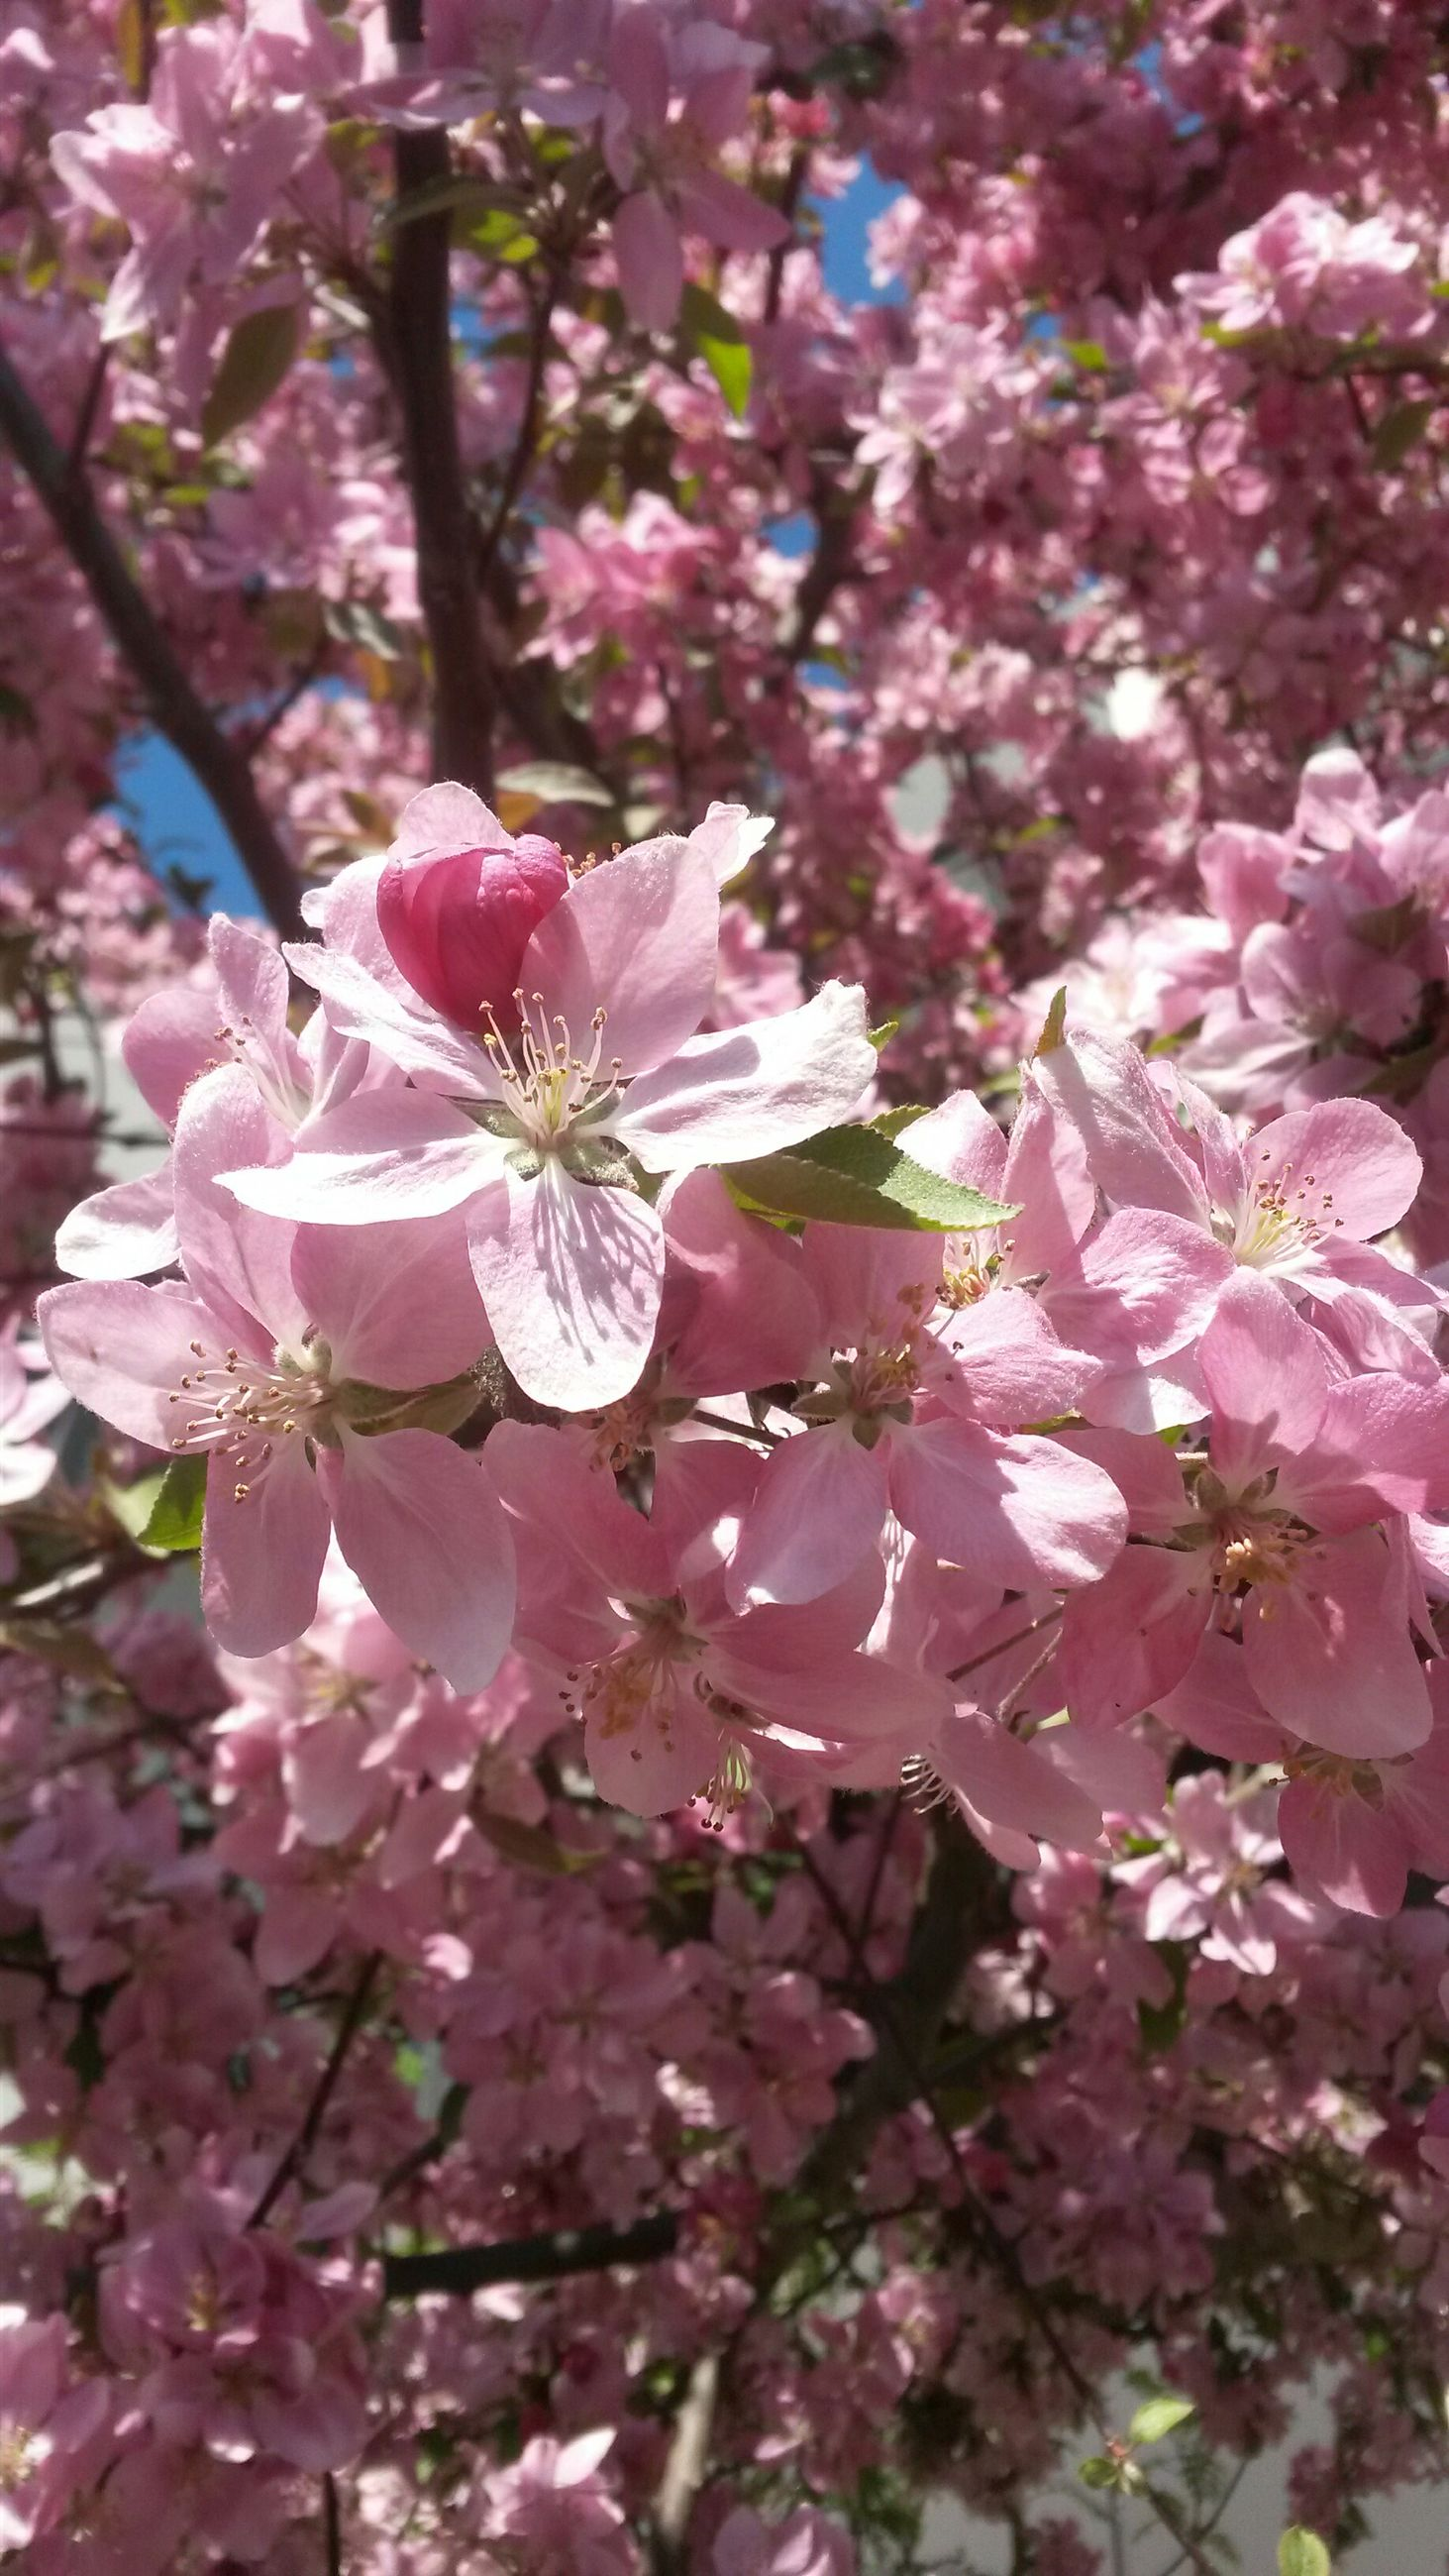 flower, freshness, growth, fragility, branch, pink color, beauty in nature, tree, cherry blossom, nature, blossom, petal, in bloom, close-up, blooming, cherry tree, focus on foreground, springtime, pink, low angle view